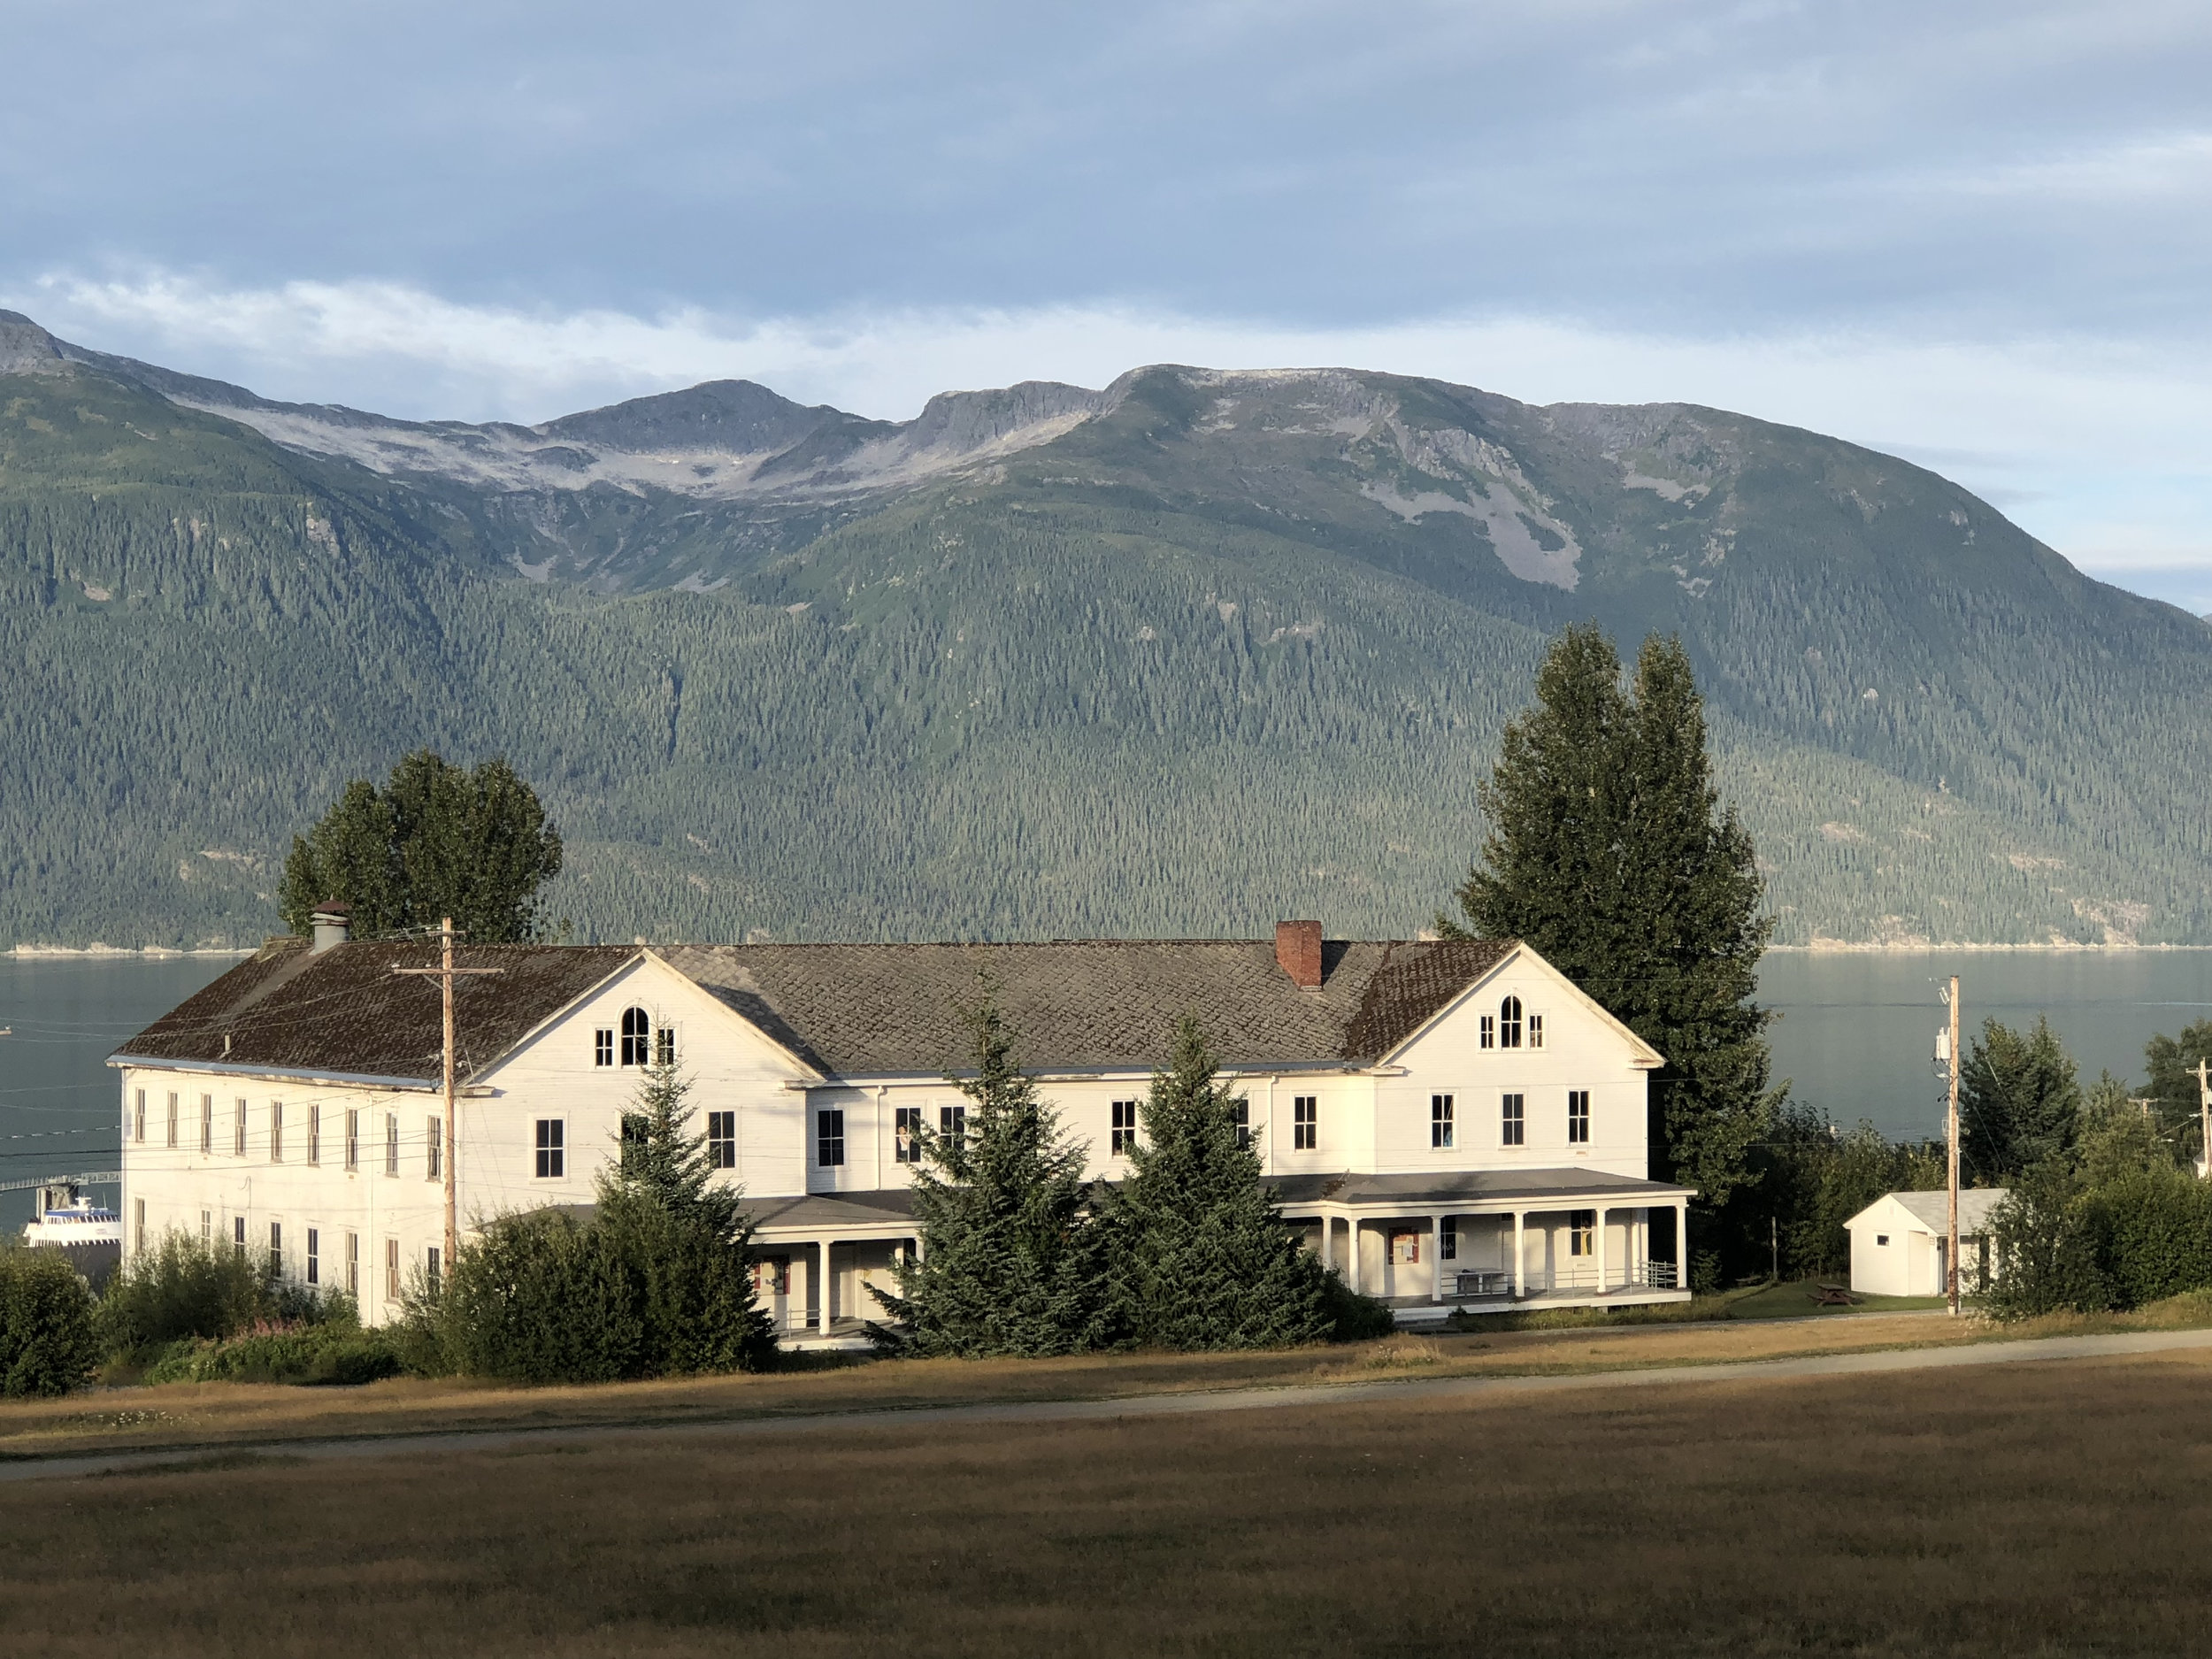 The old Port Chilkoot barracks.